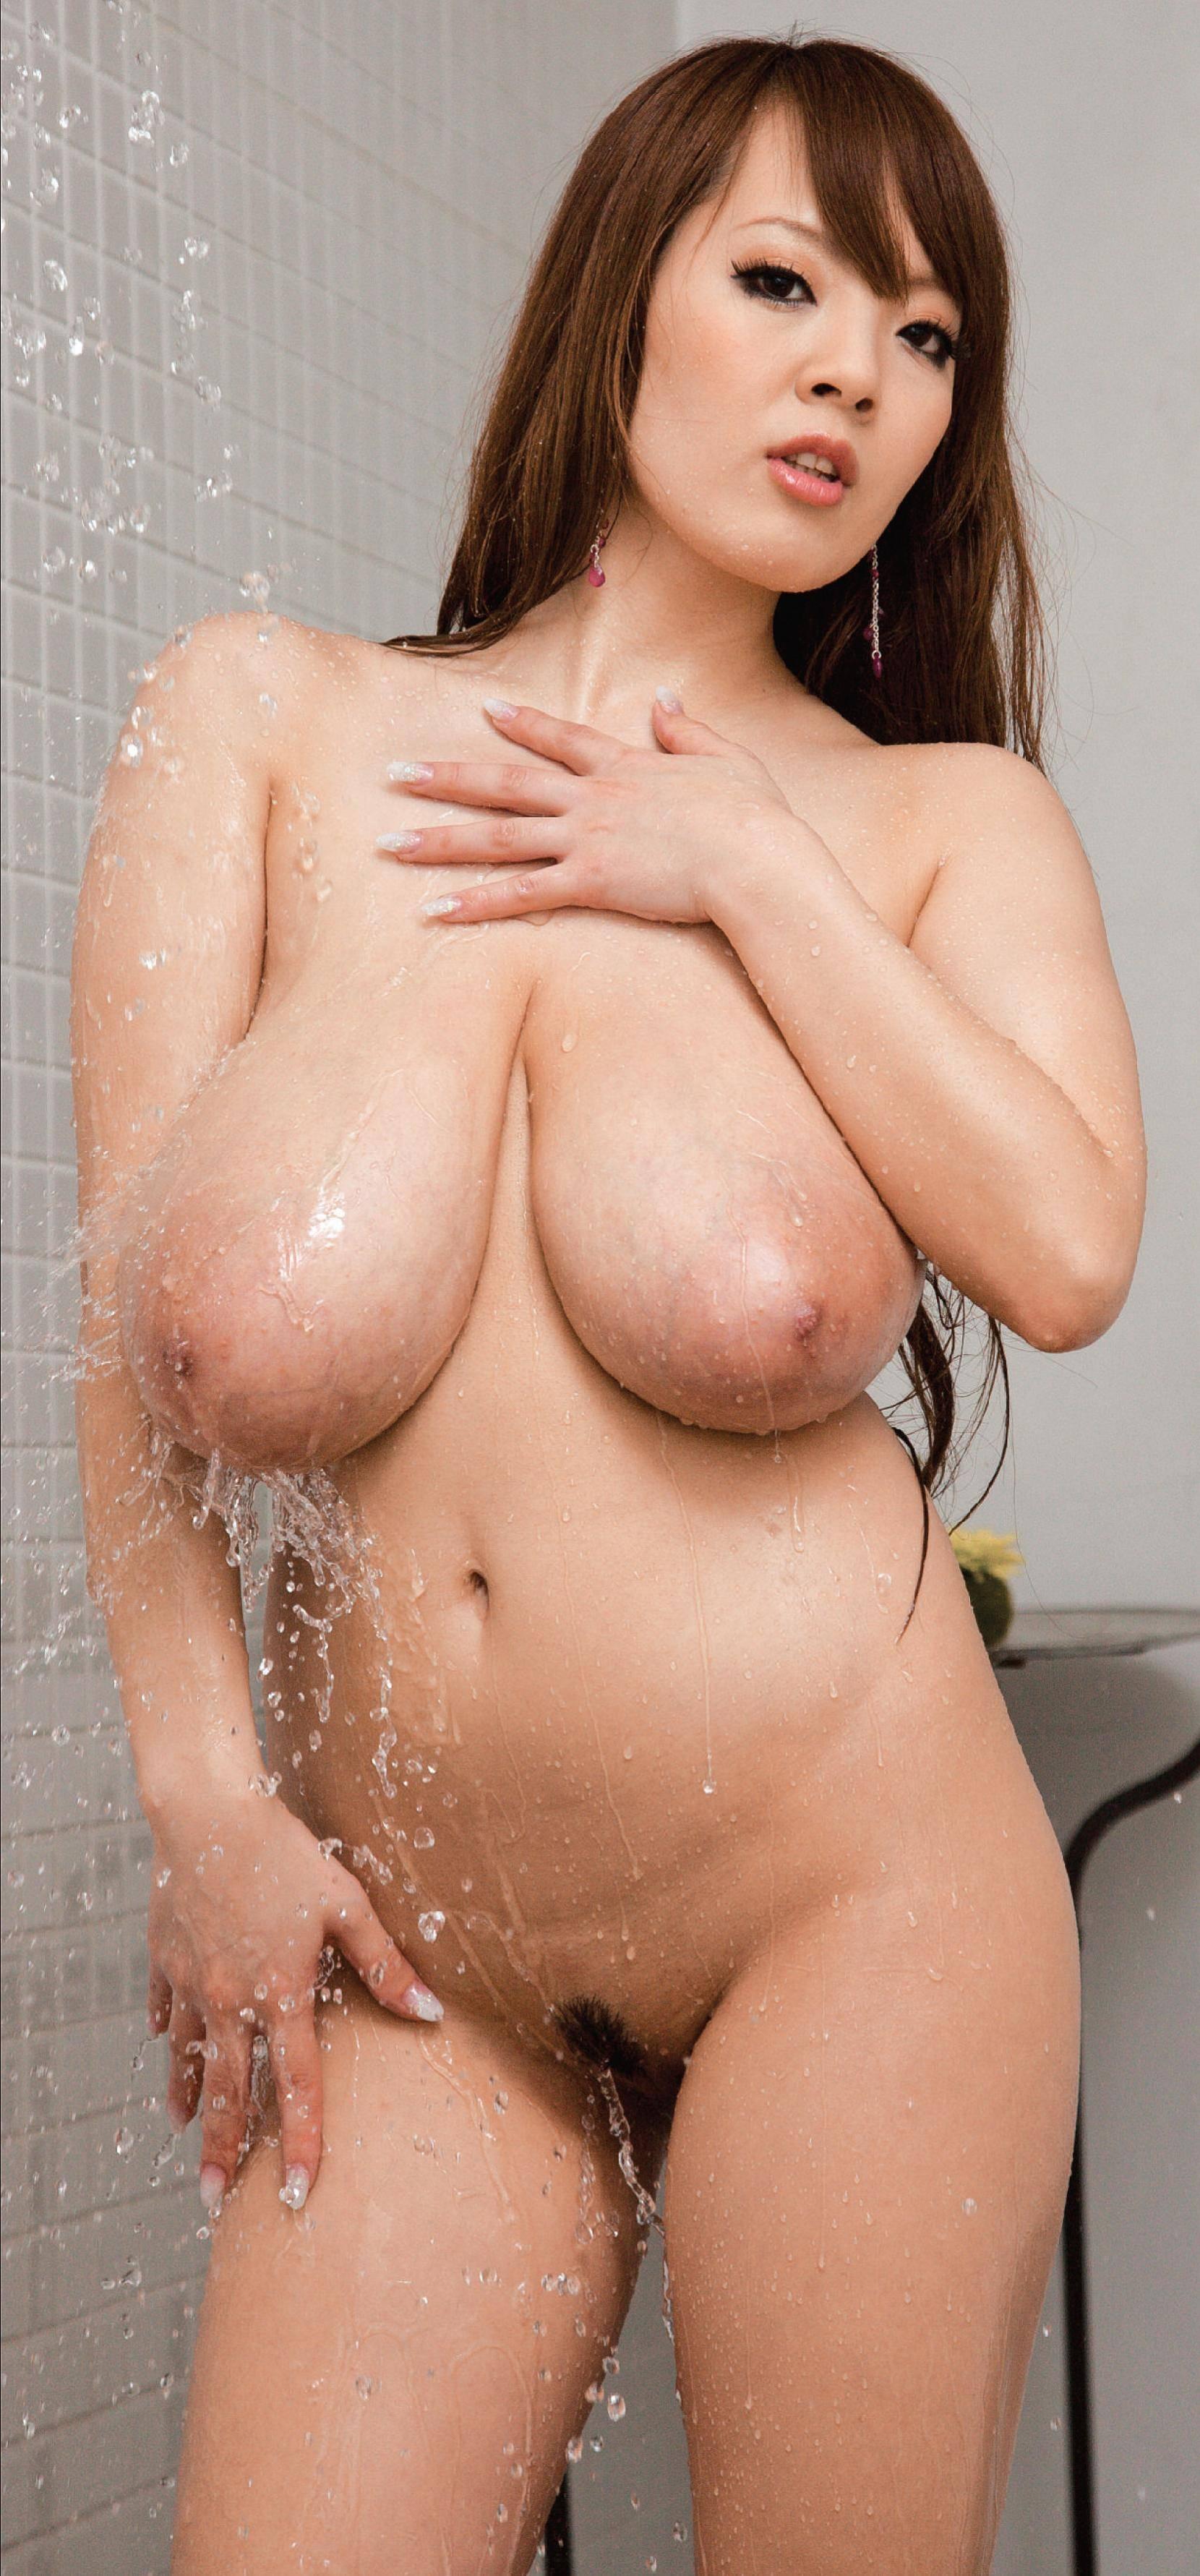 Asian Beauty Hitomi Tanaka In The Shower